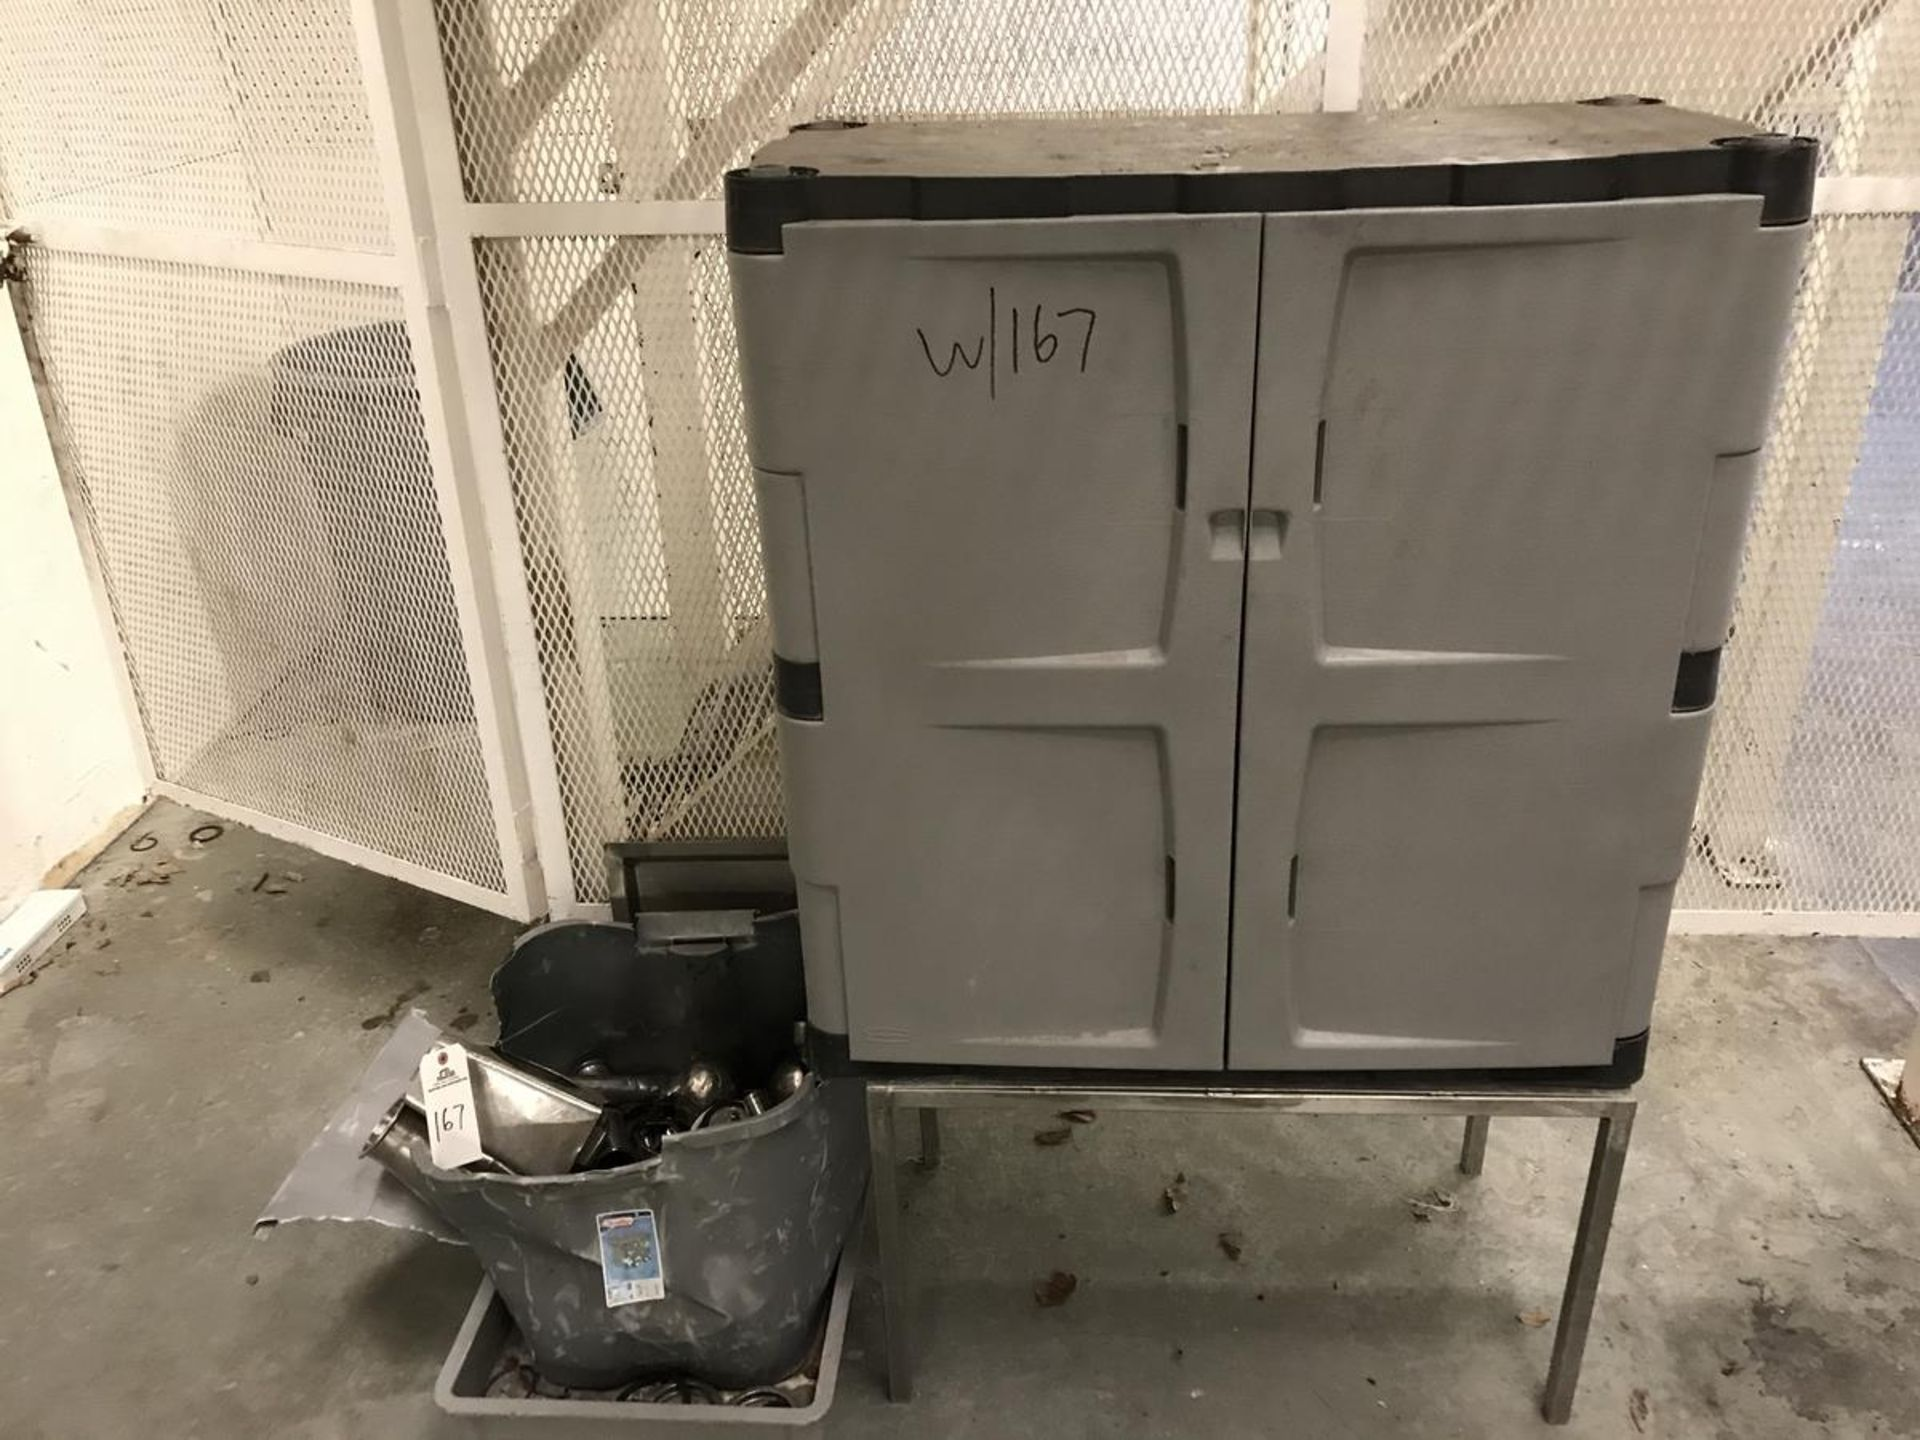 Lot 167 - (1) Cabinet, (1) Tray, Stainless Steel Fittings | Rig Fee: $100